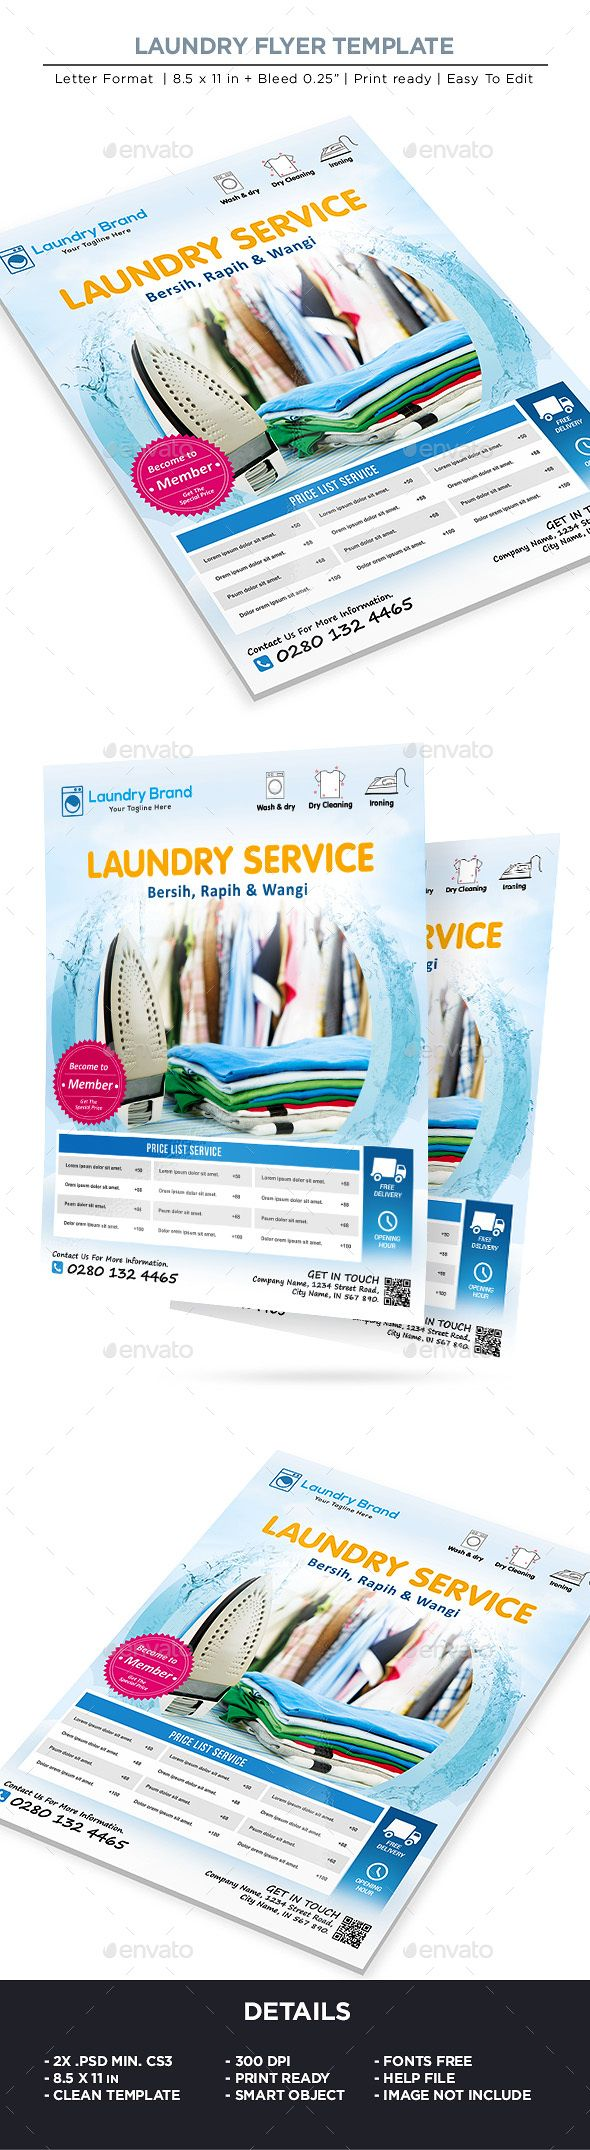 Laundry Services Flyer Business Flyer Template PSD